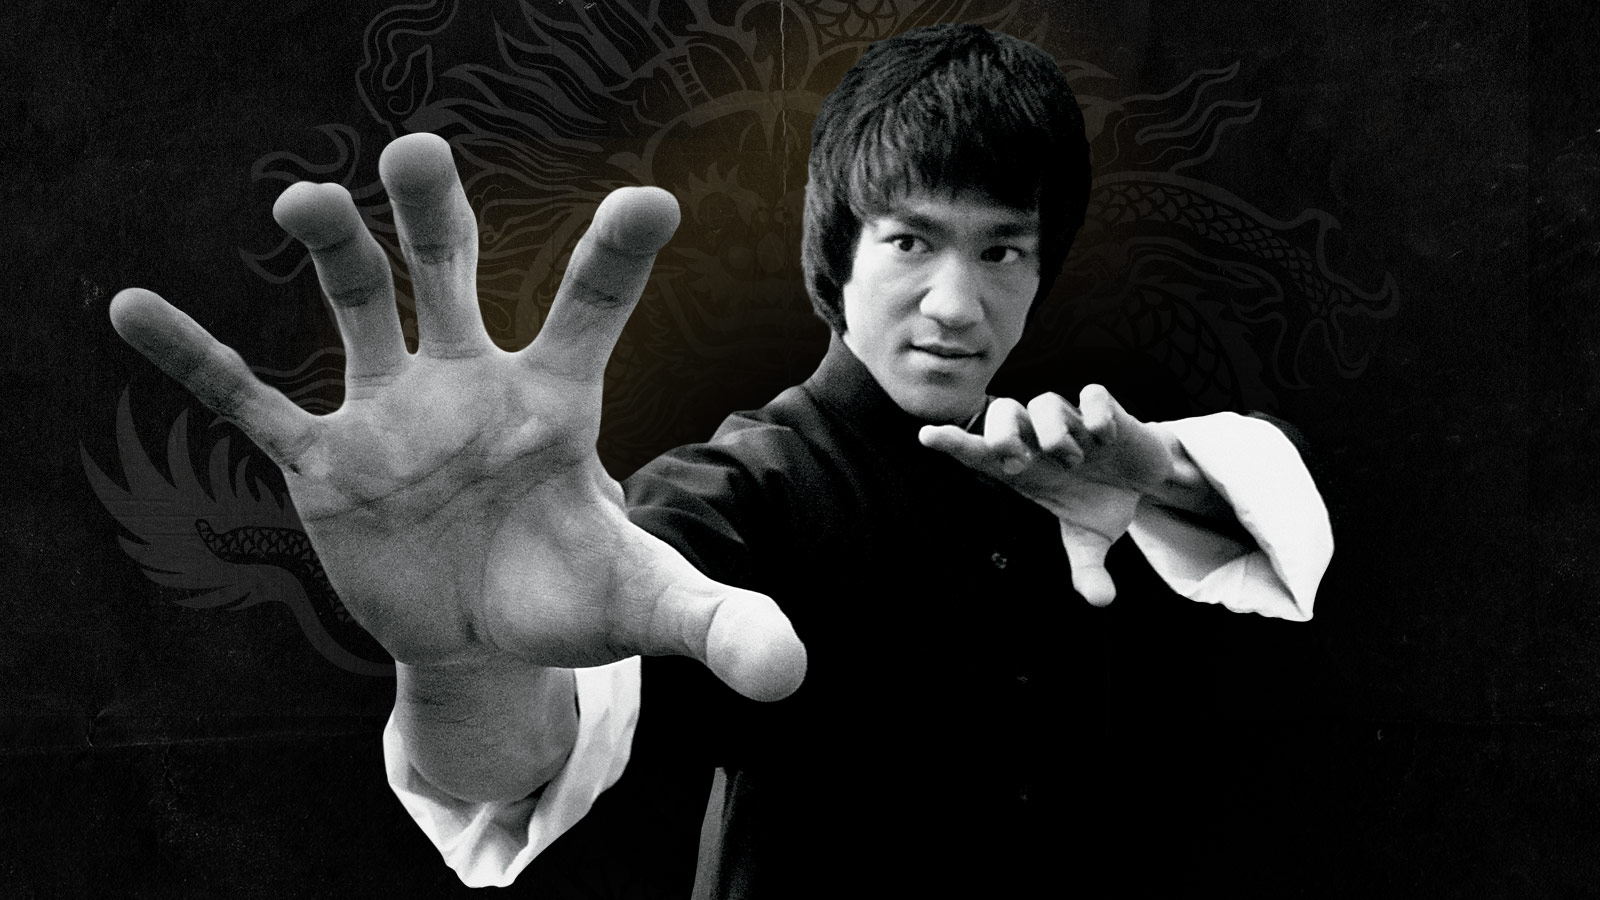 bruce lee deathbruce lee ресторан, bruce lee film, bruce lee video, bruce lee москва, bruce lee киев, bruce lee kino, bruce lee dragon warrior, bruce lee wiki, bruce lee video скачать, bruce lee chuck norris, bruce lee скачать бесплатно, bruce lee height, bruce lee photos, bruce lee foto, bruce lee vikipedi, bruce lee смерть, bruce lee wallpaper, bruce lee death, bruce lee be water, bruce lee haqqinda